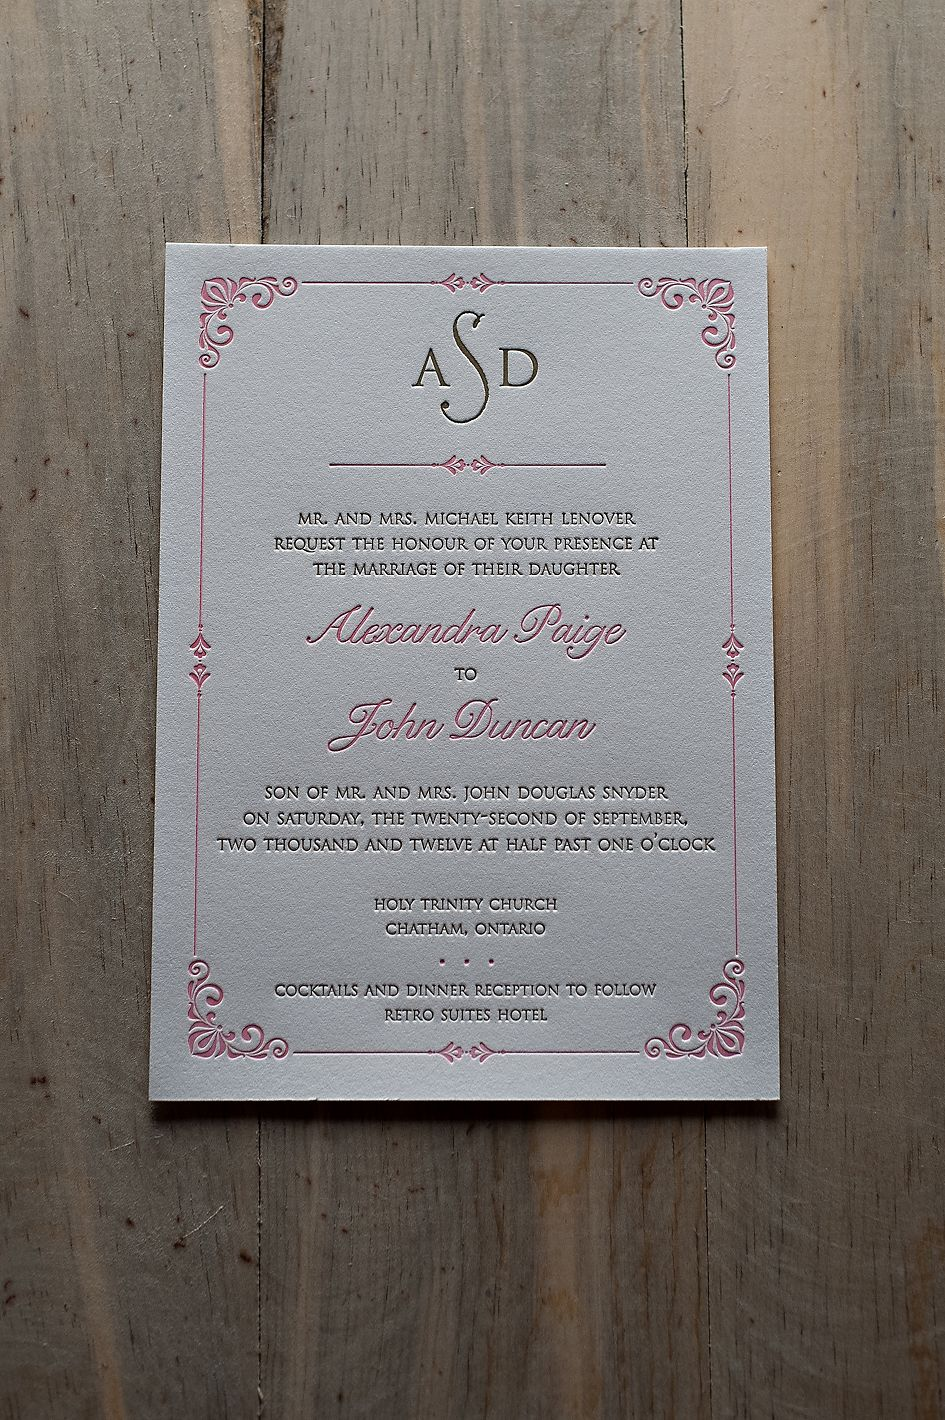 casual evening wedding invitation wording%0A Royal Wedding Invitation  formal invitation wording  pink and gold wedding   letterpress wedding invitations